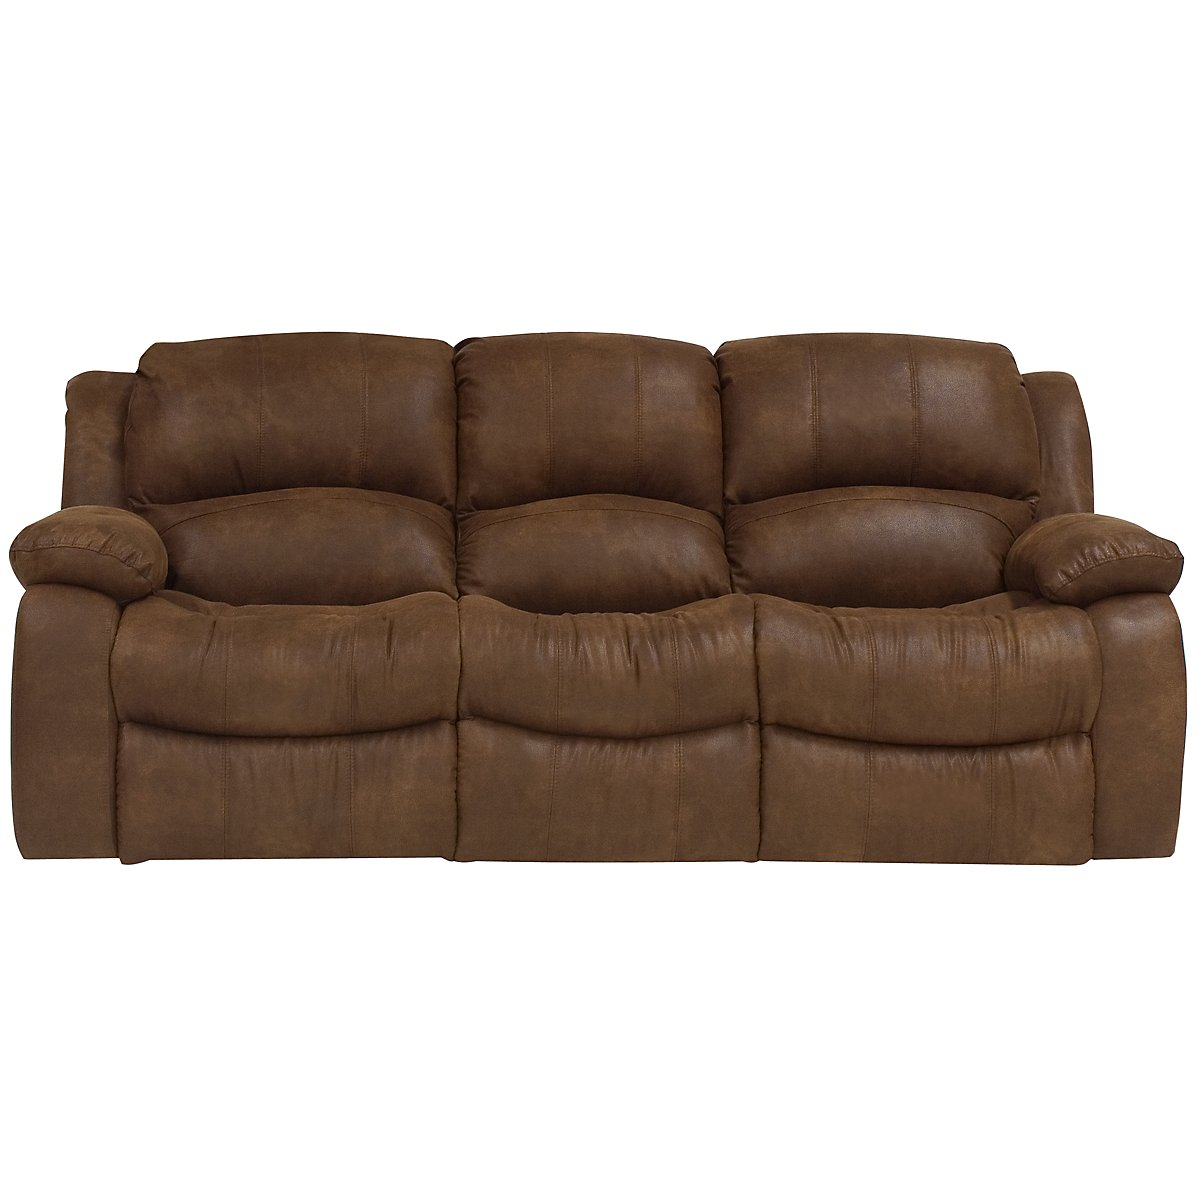 Microfiber power reclining sofa hereo sofa Brown microfiber couch and loveseat